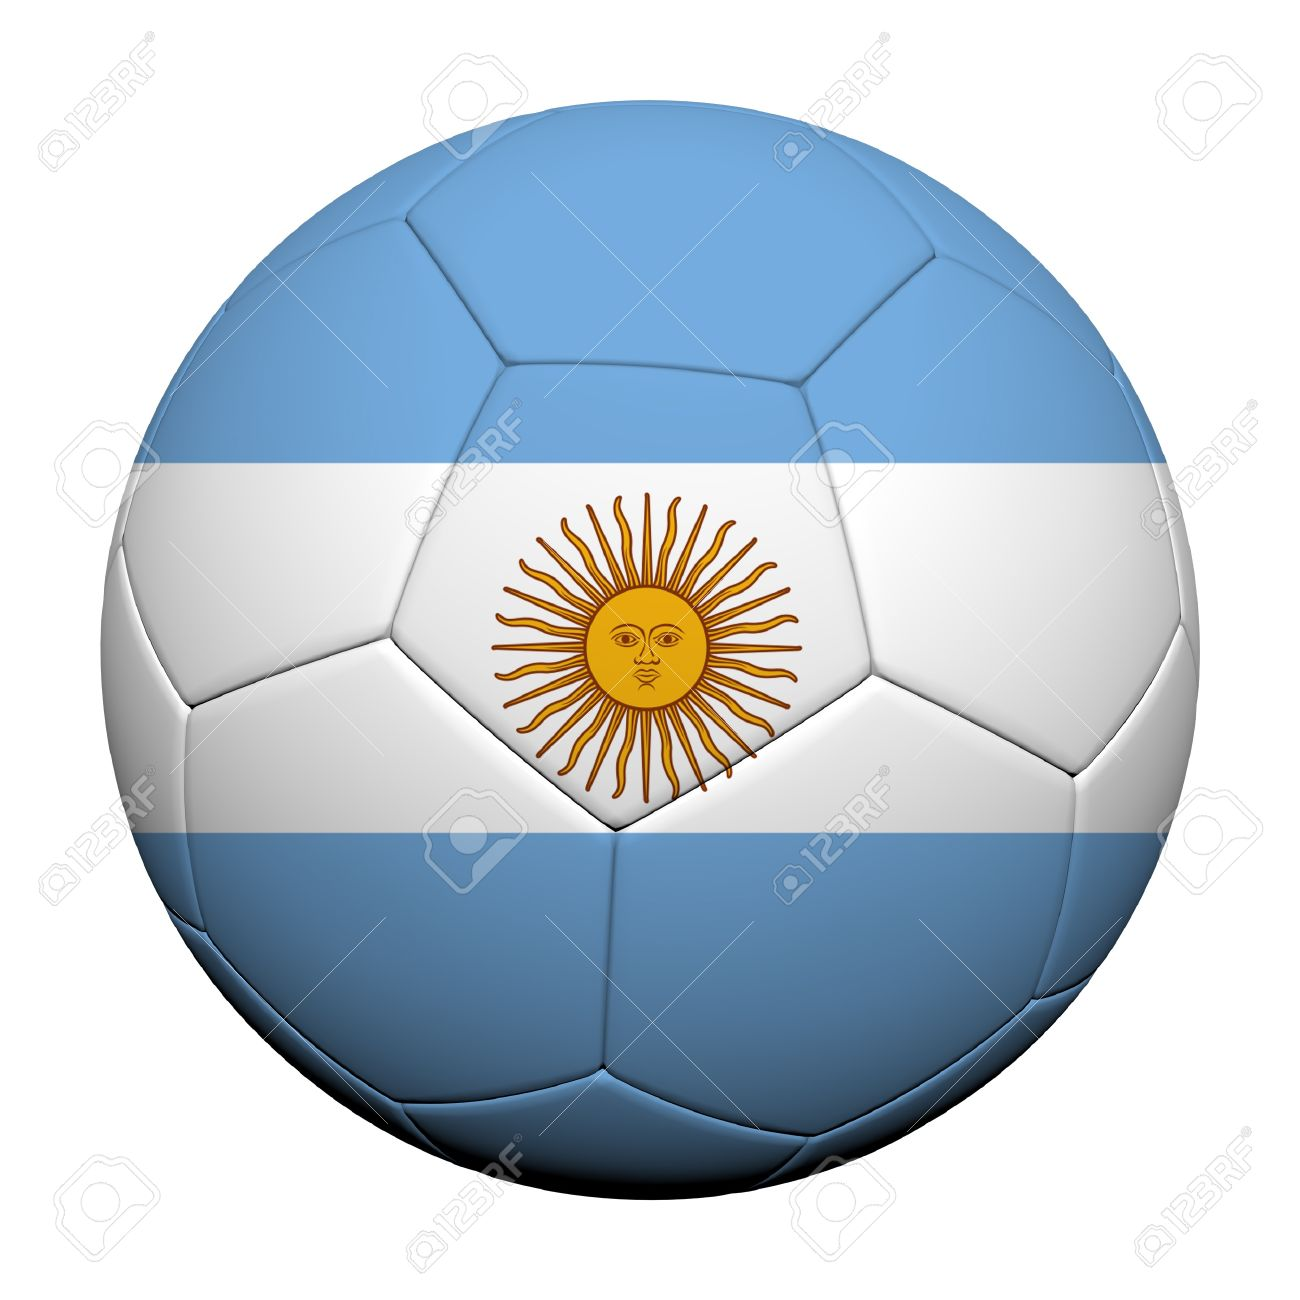 Argentina Flag Pattern 3d rendering of a soccer ball Stock Photo - 14187082 bd39a24a3993